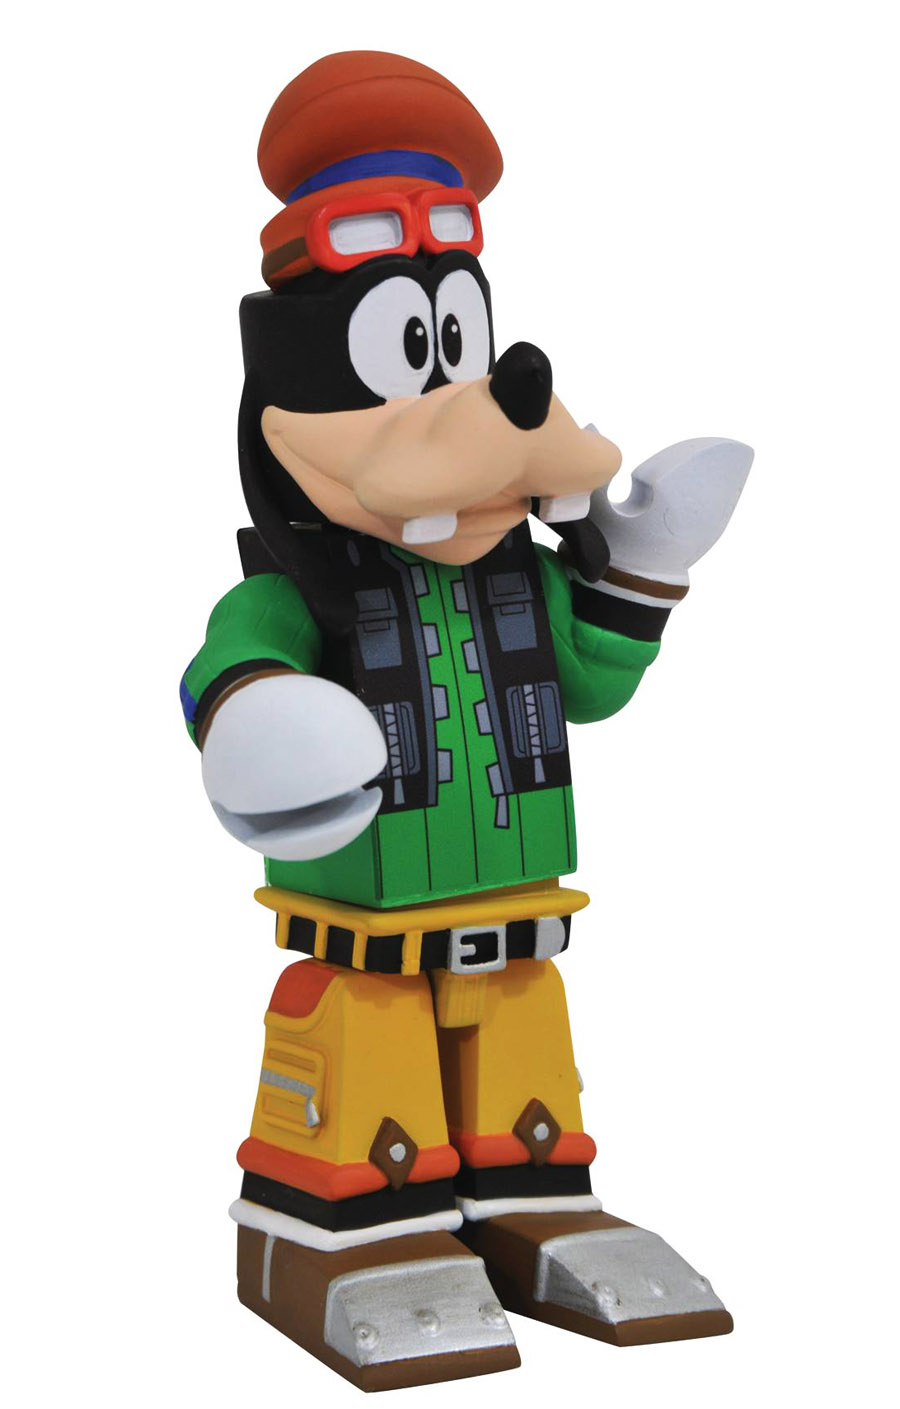 Goofy Kingdom Hearts Disney Vinimate Vinyl Figure